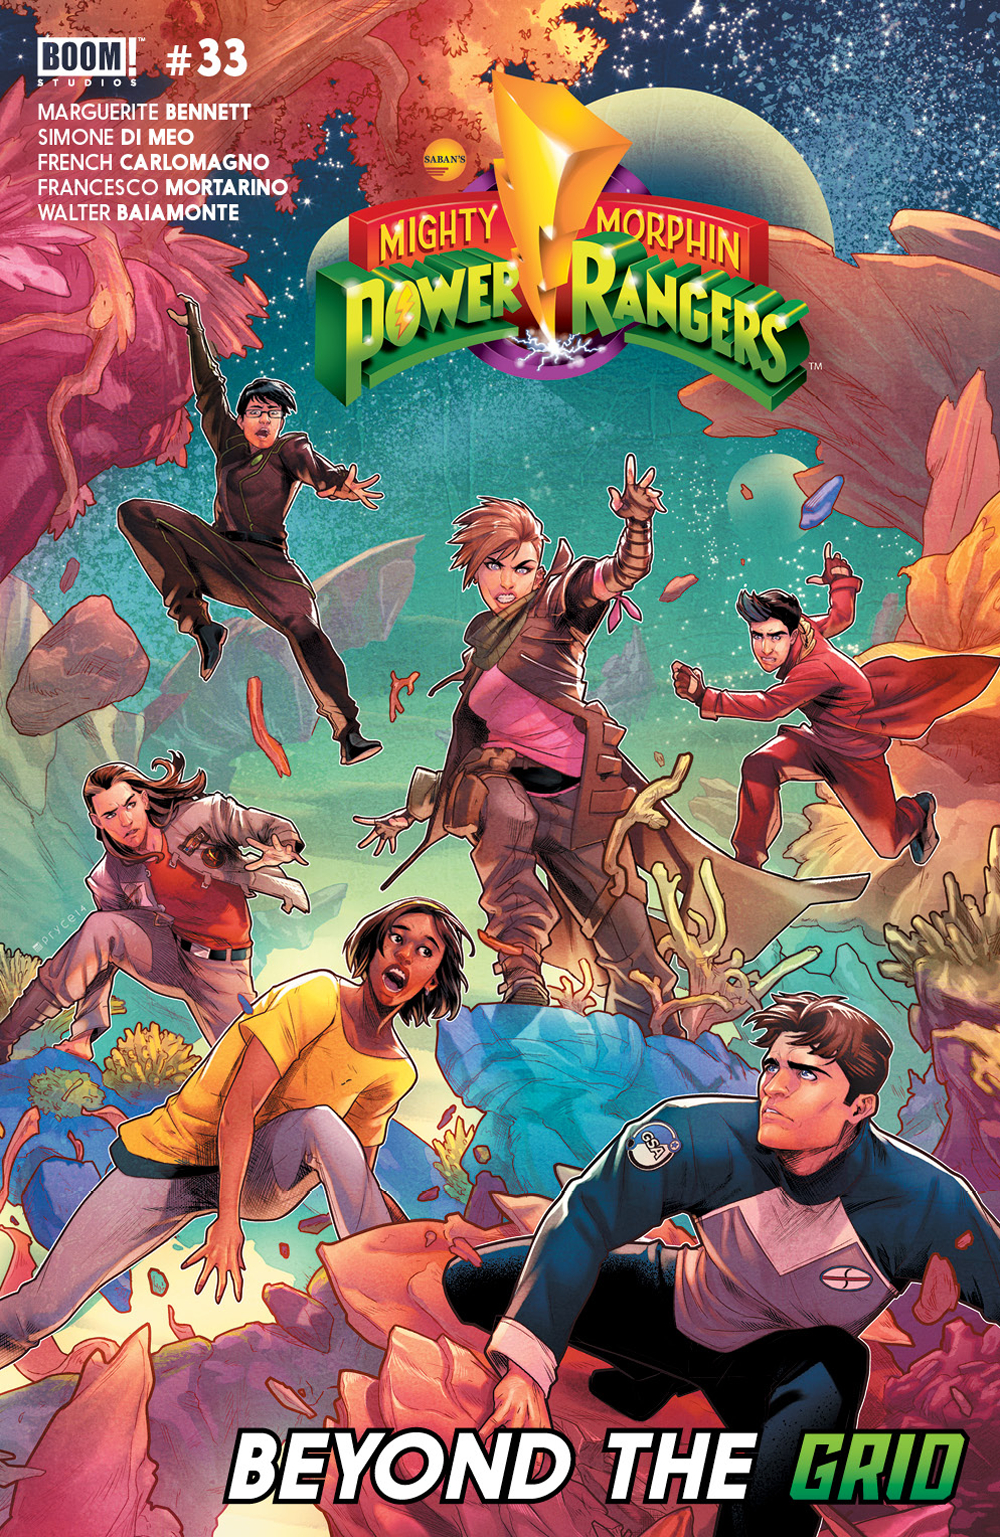 MIGHTY MORPHIN POWER RANGERS #33 MAIN